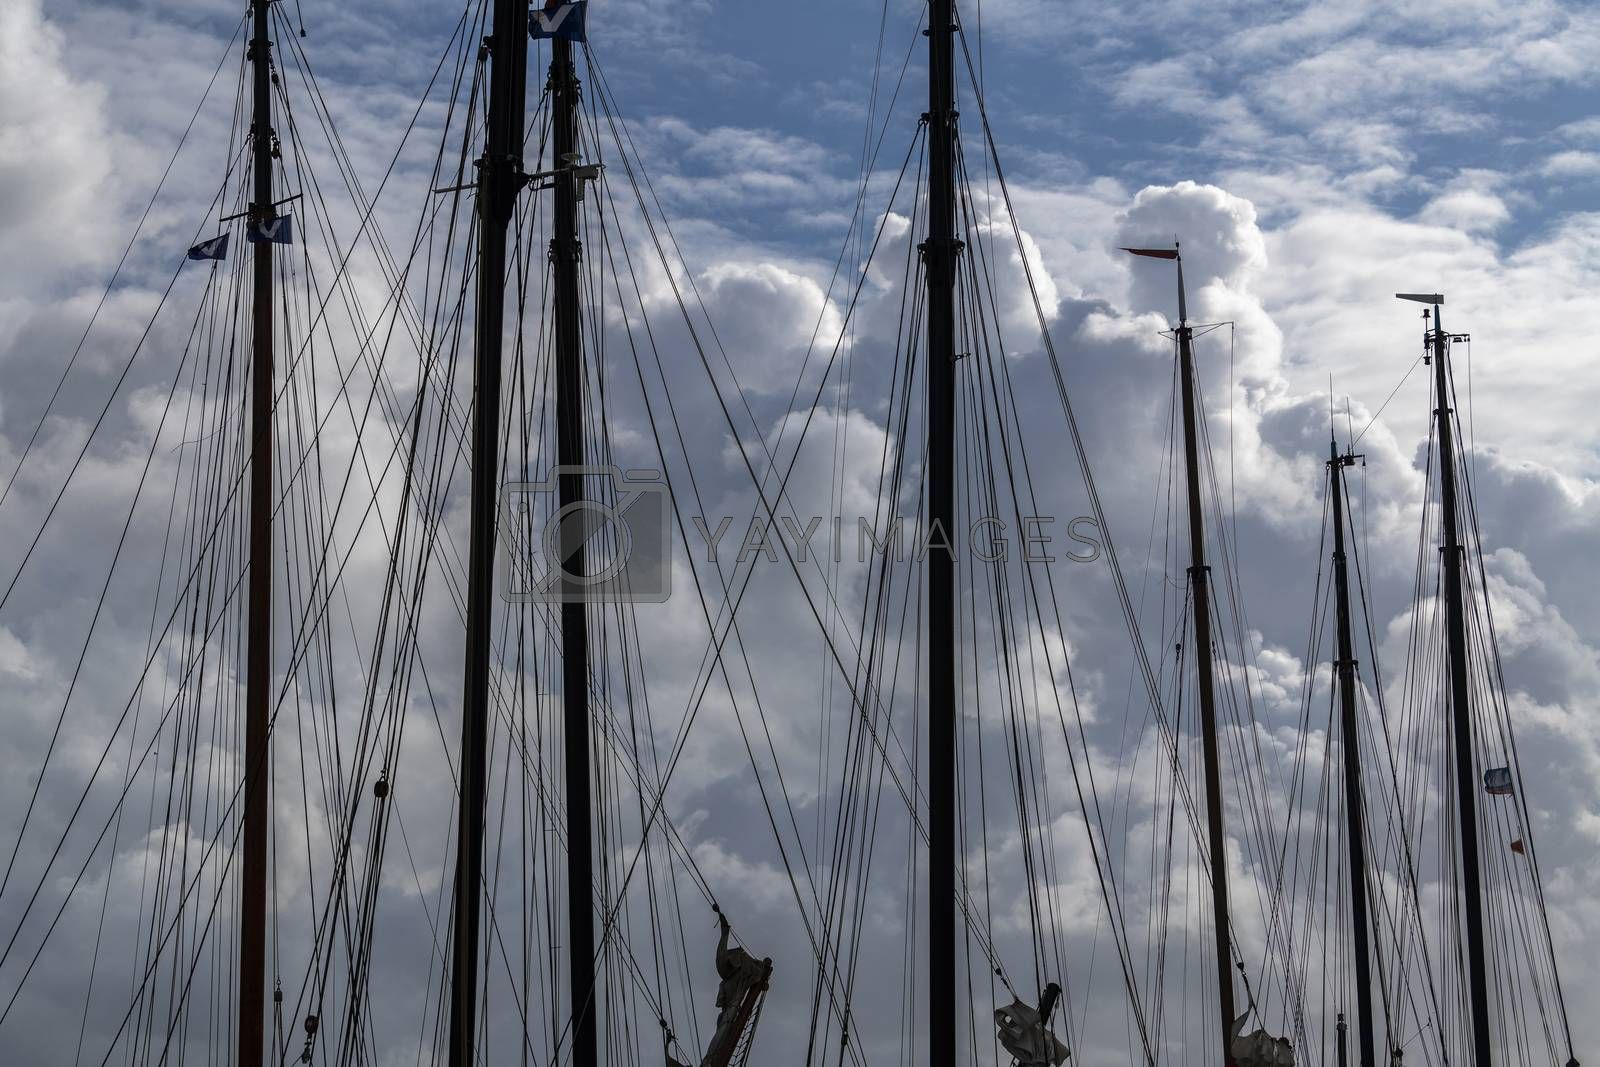 Masts in a harbor with impressive cloudy skies in the background by Tofotografie